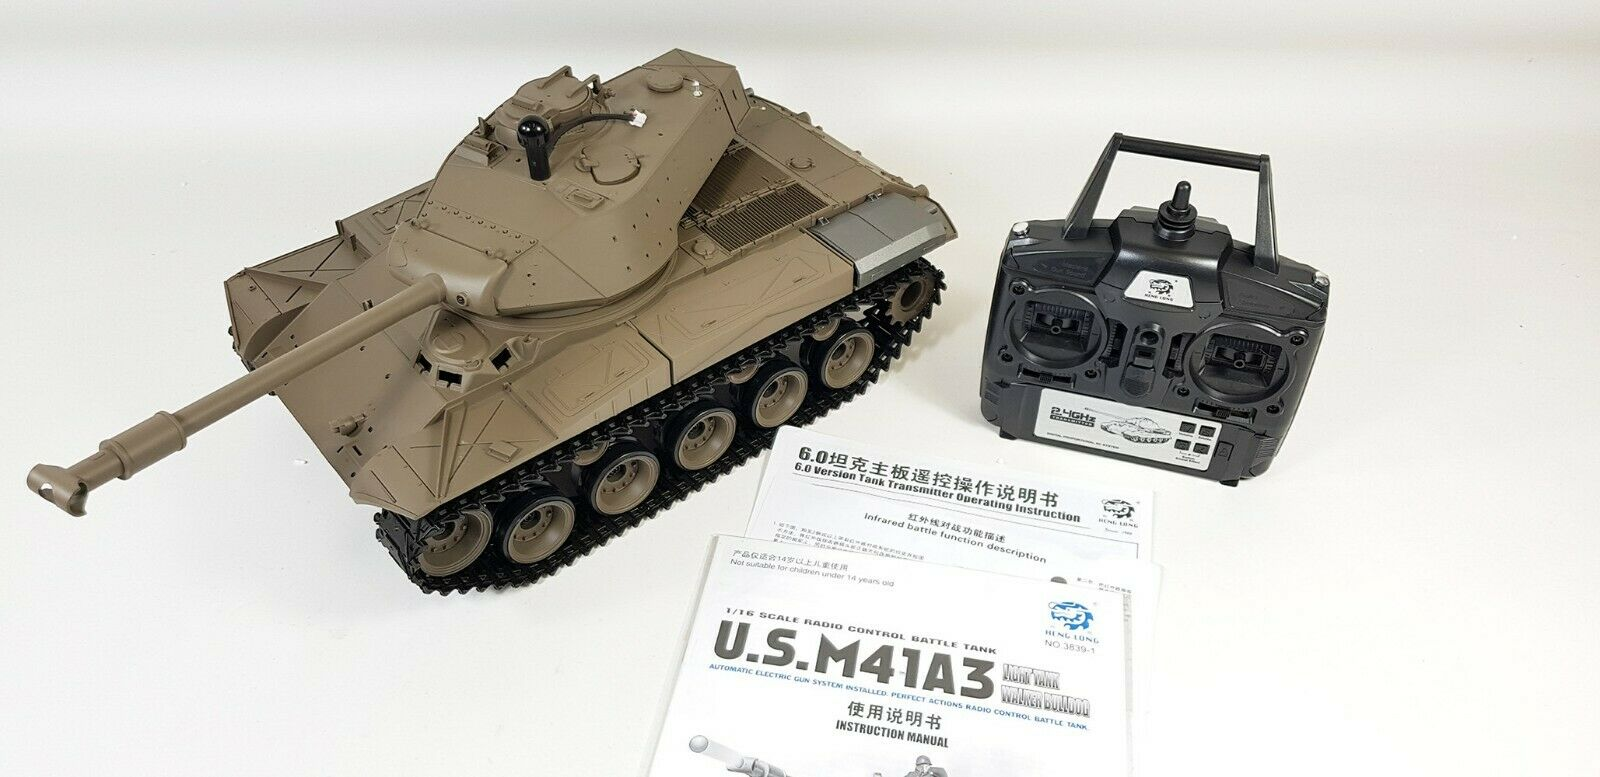 LATEST VERSION 6 2.4GHZ INFRARED HENG LONG WALKER BULLDOG RC TANK SMOKE SOUND